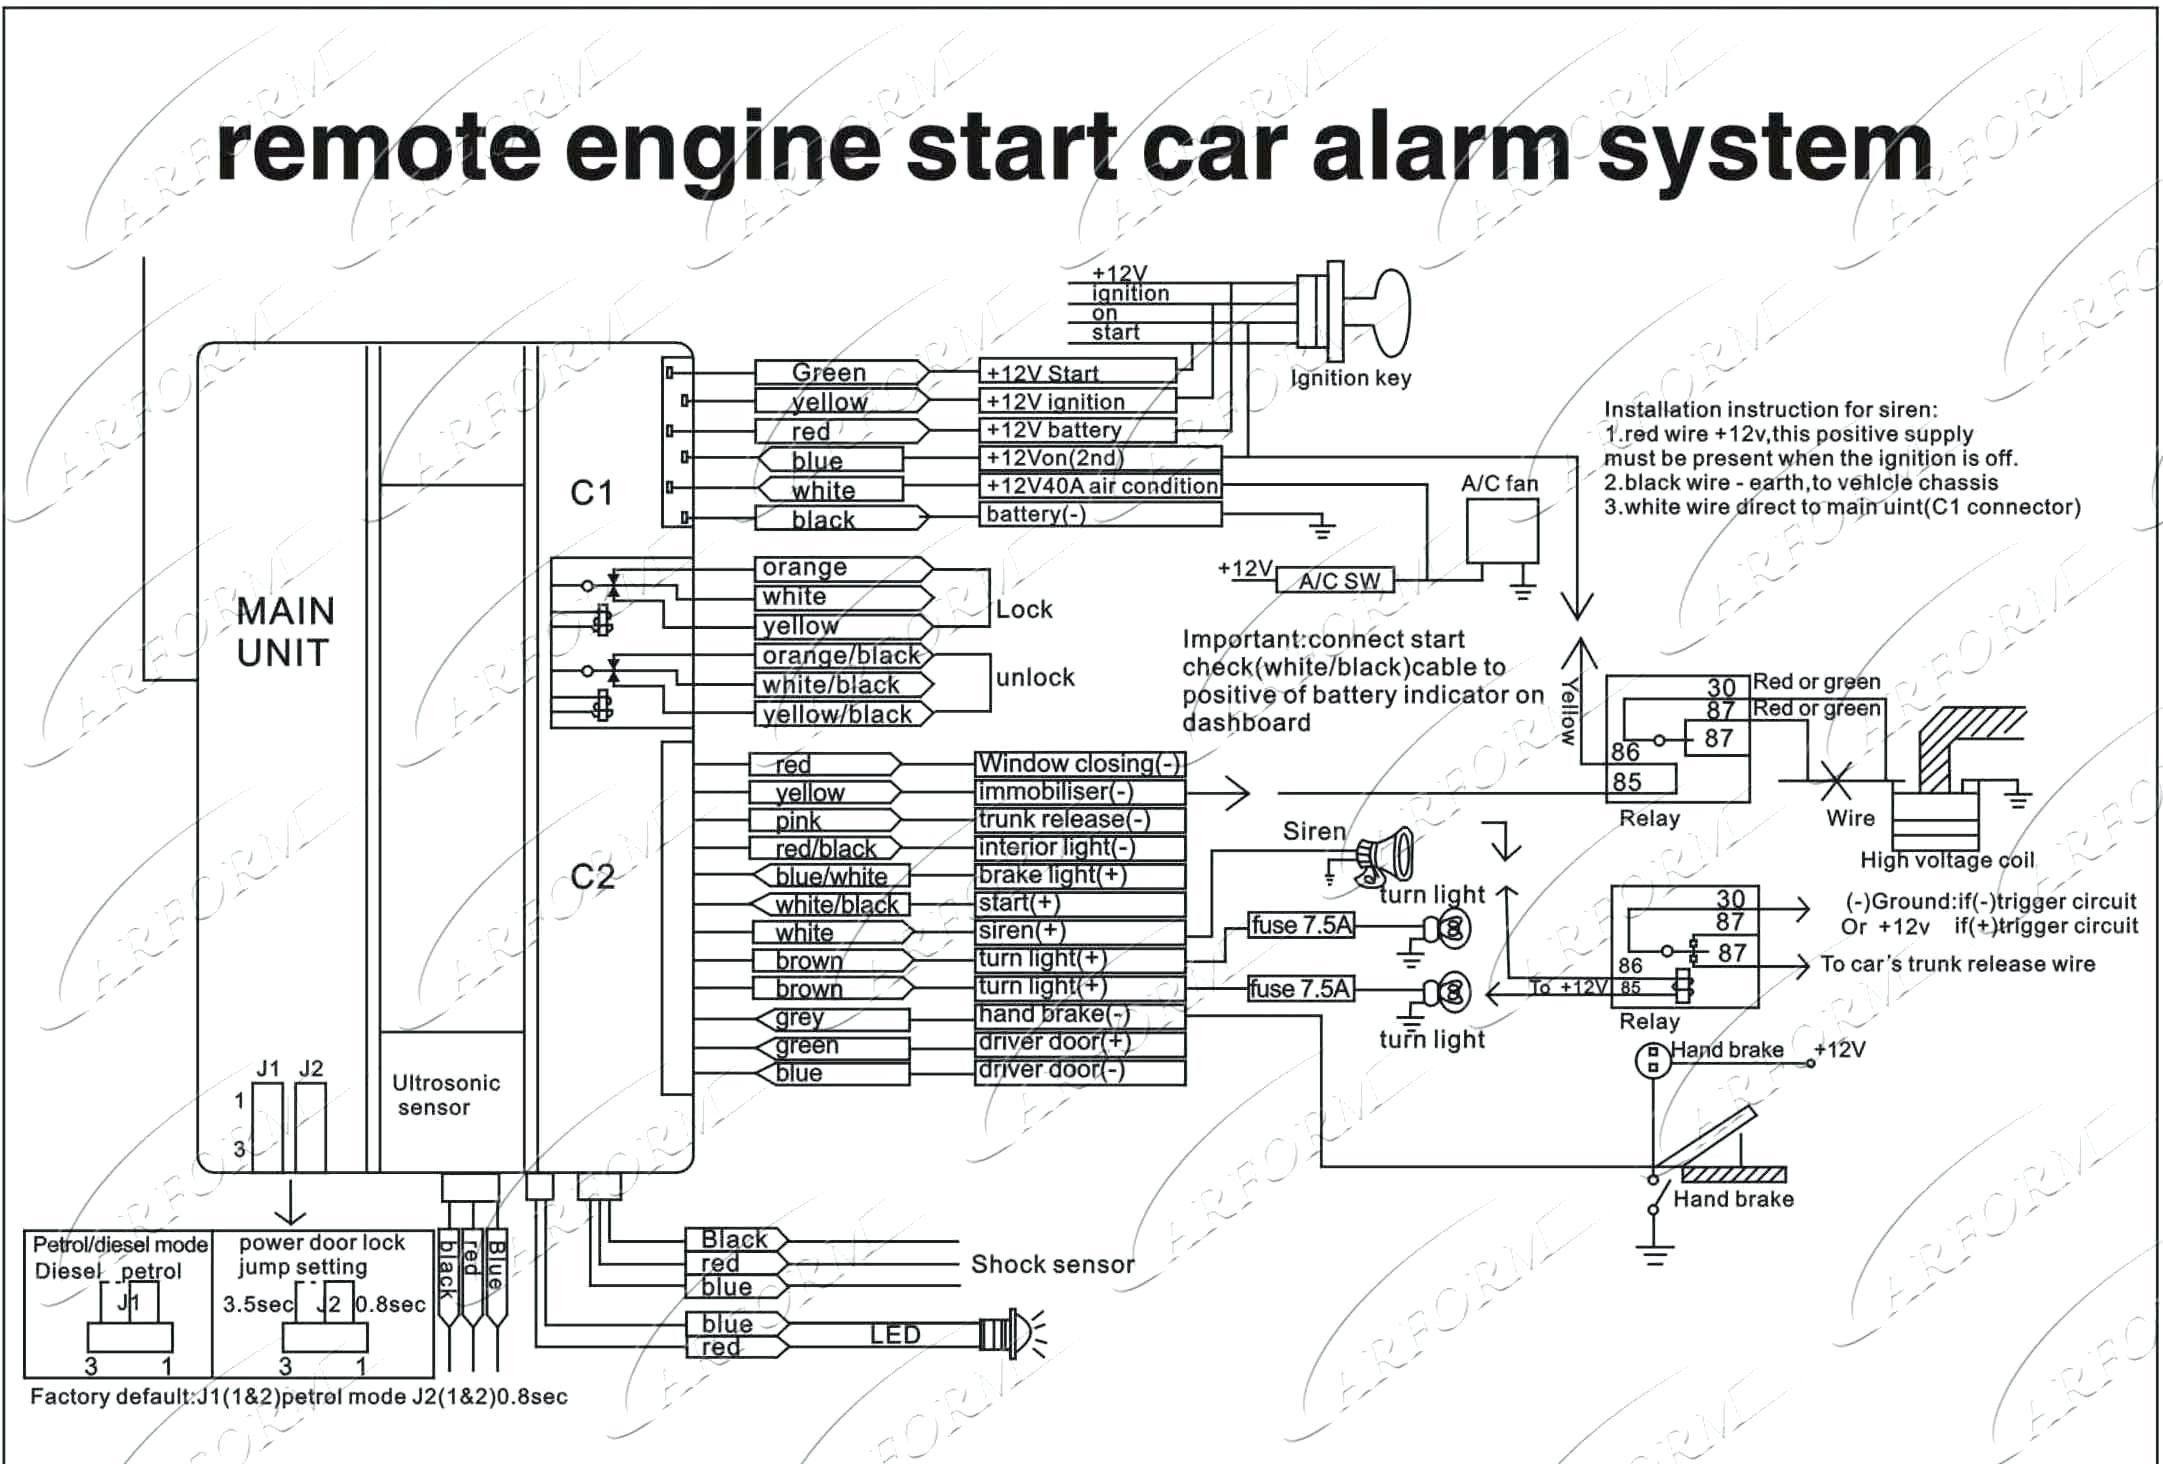 [EQHS_1162]  New Installation Wiring Diagram Of Motorcycle Alarm System #diagram  #diagramtemplate #diagramsample | Alarm Install Wiring Diagram |  | Pinterest